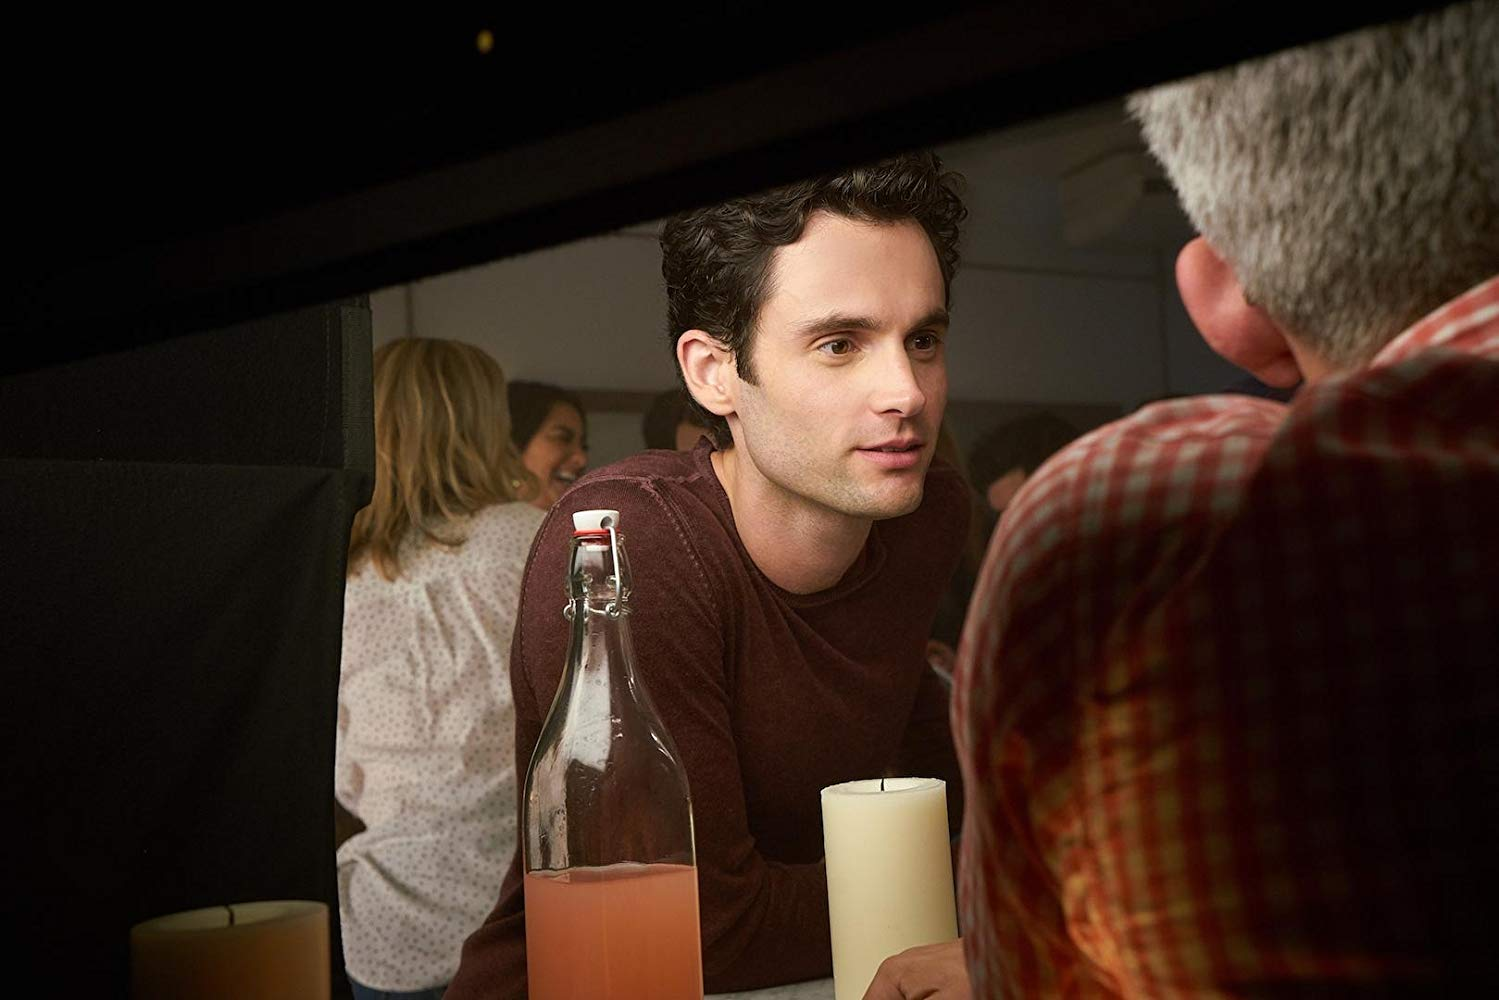 You: Penn Badgley in una scena della serie